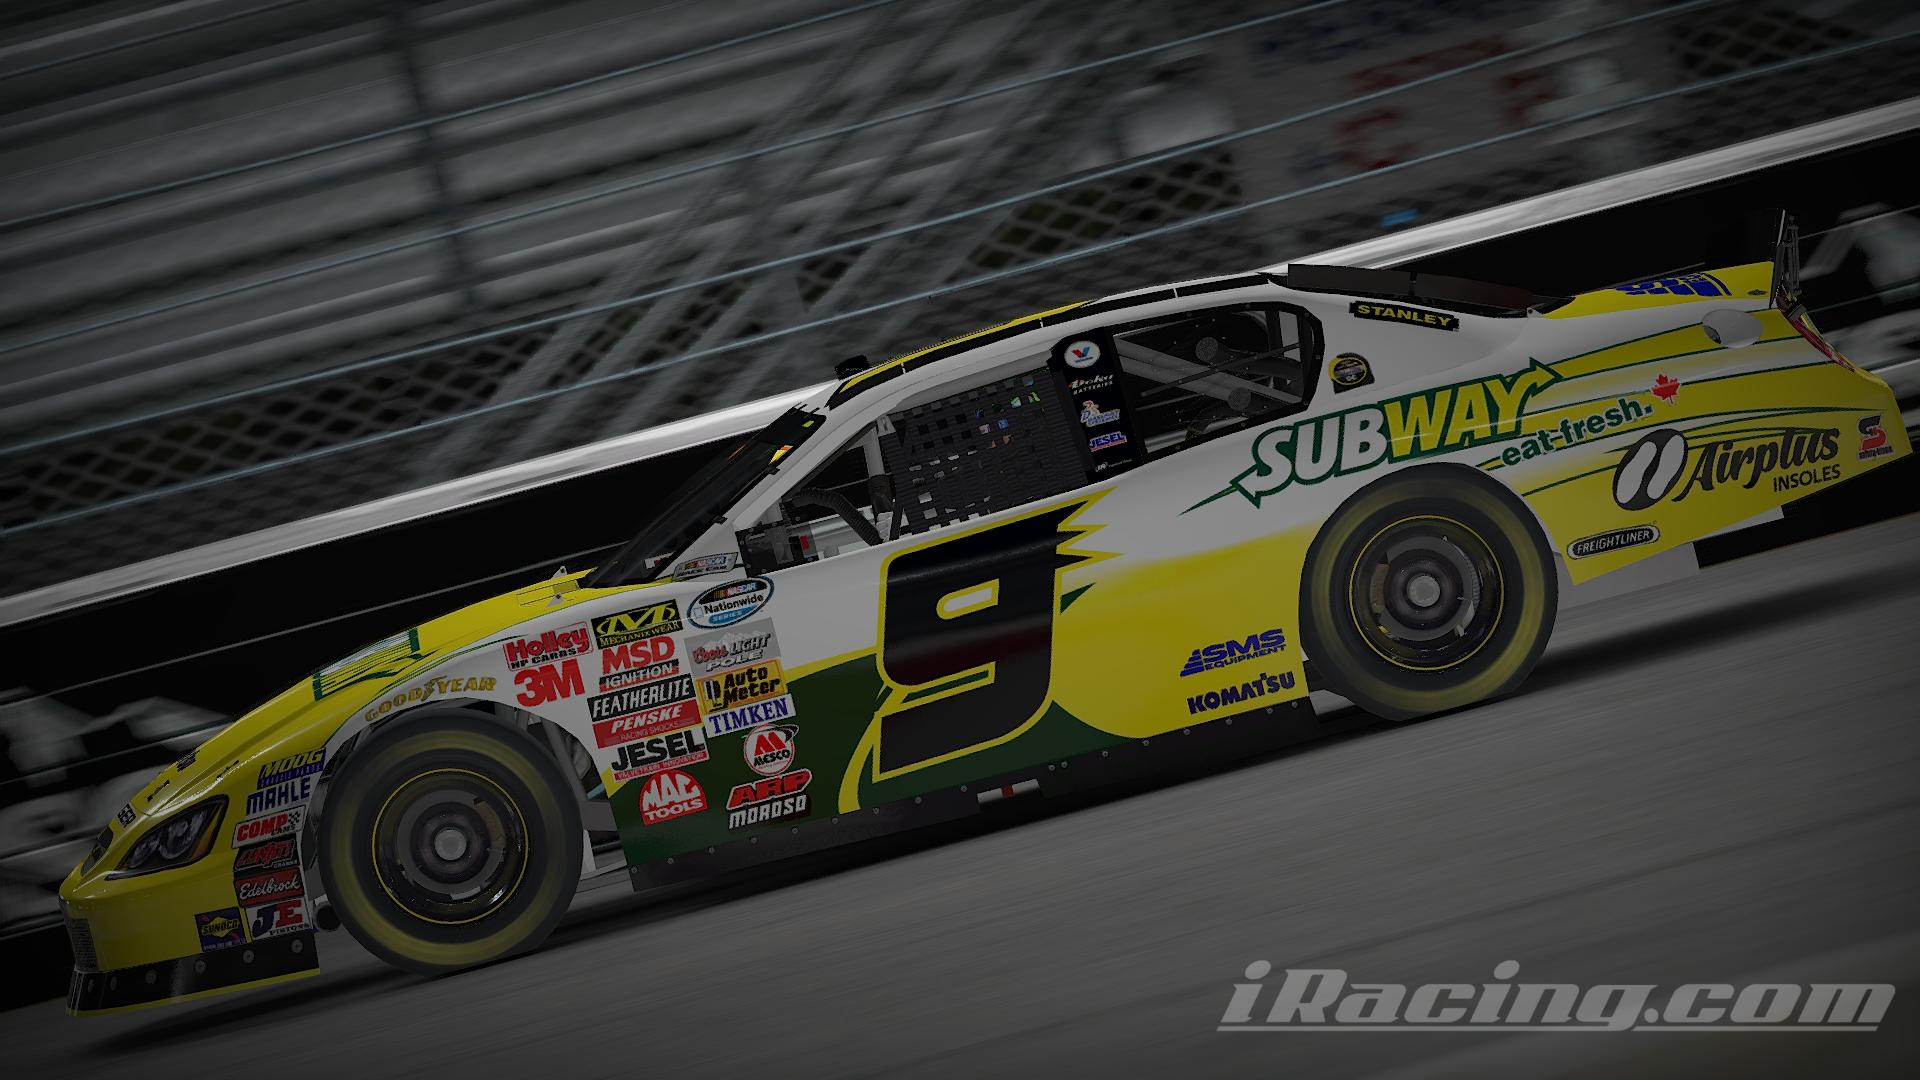 Preview of 2008 Patrick Carpentier Subway by Justin Teel